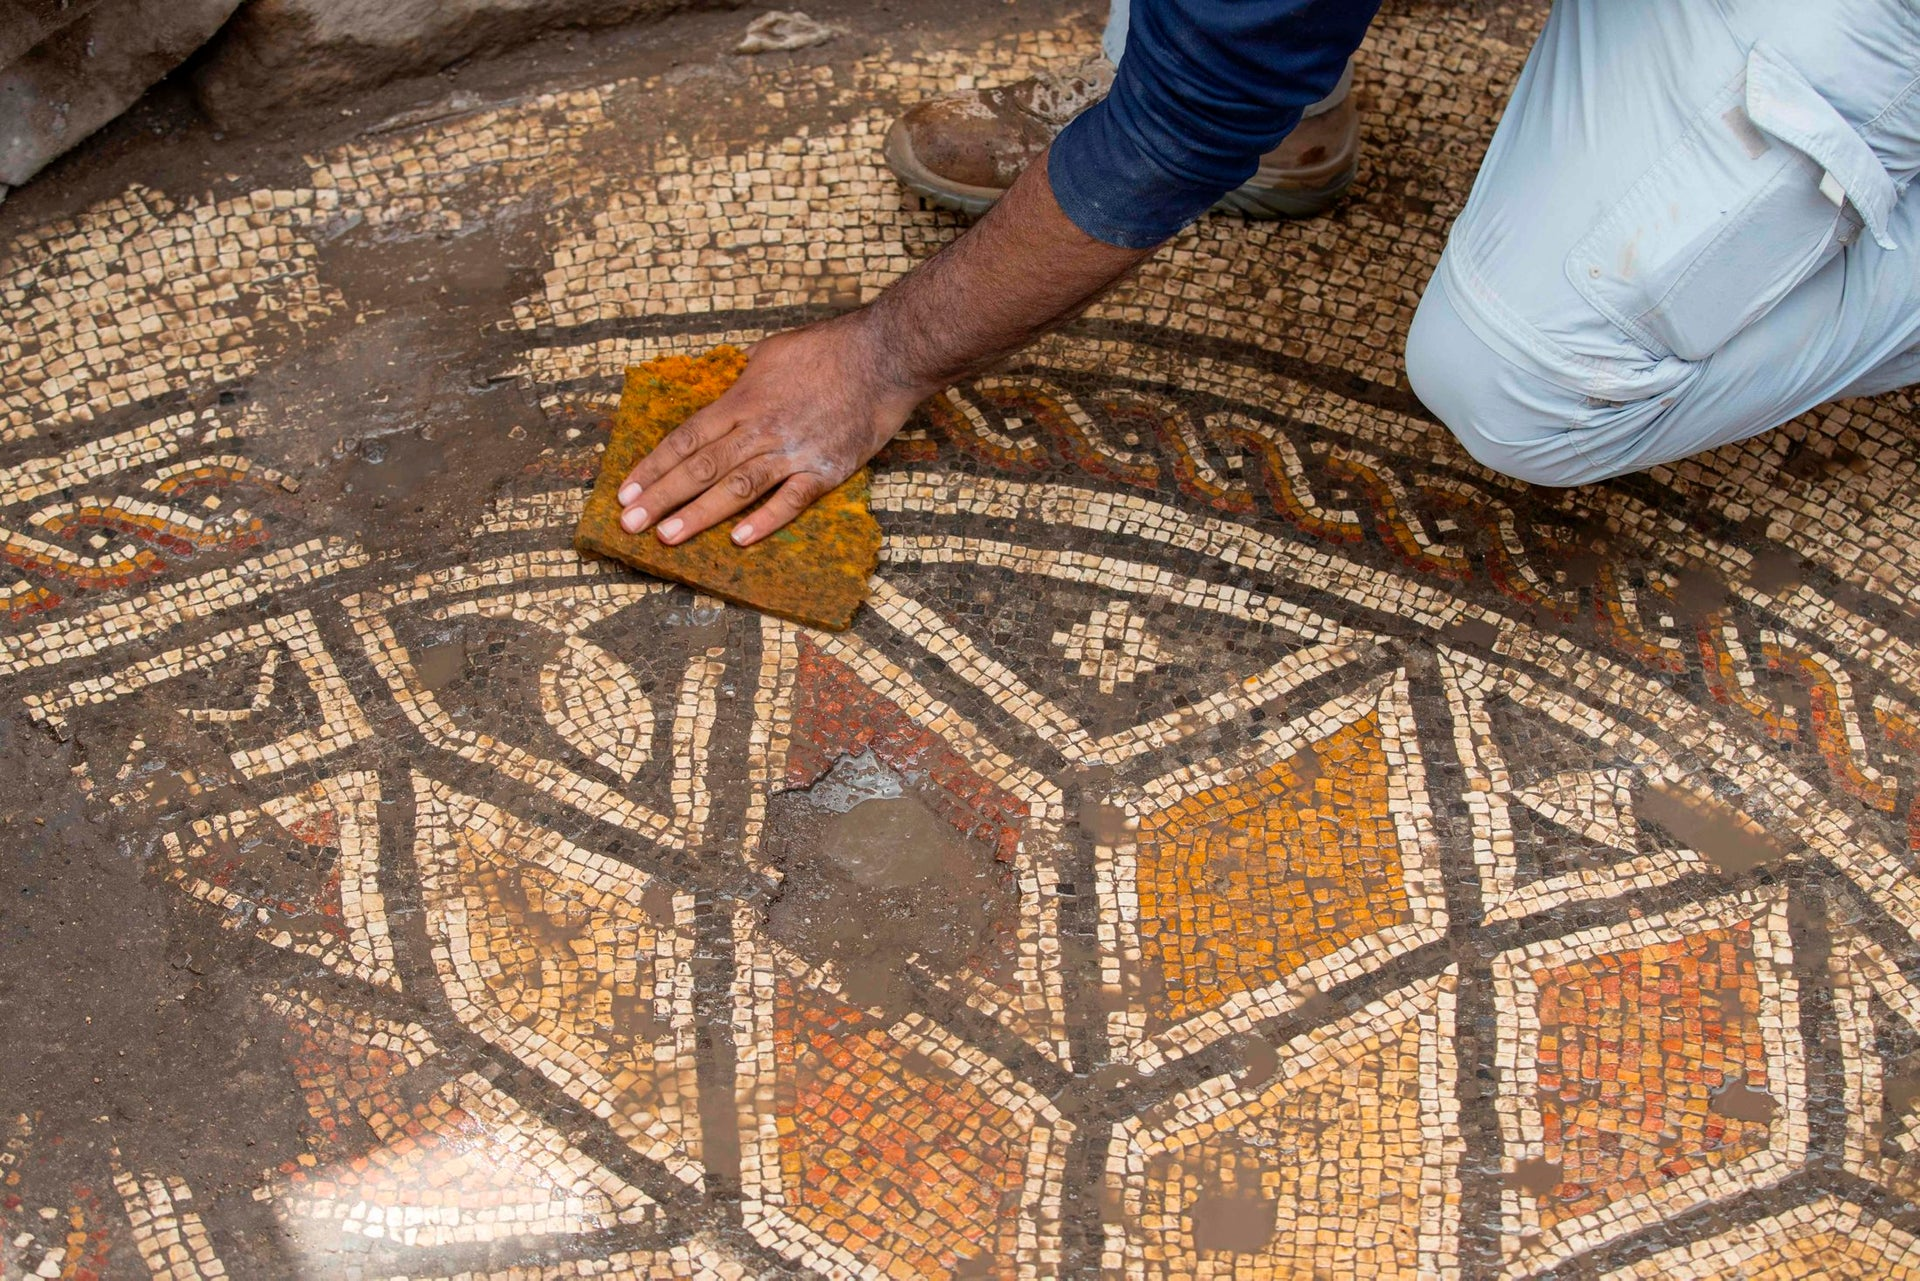 A worker cleans a mosaic floor during renovations at the ancient harbour of Caesarea on April 26, 2017, in the Israeli Mediterranean town.